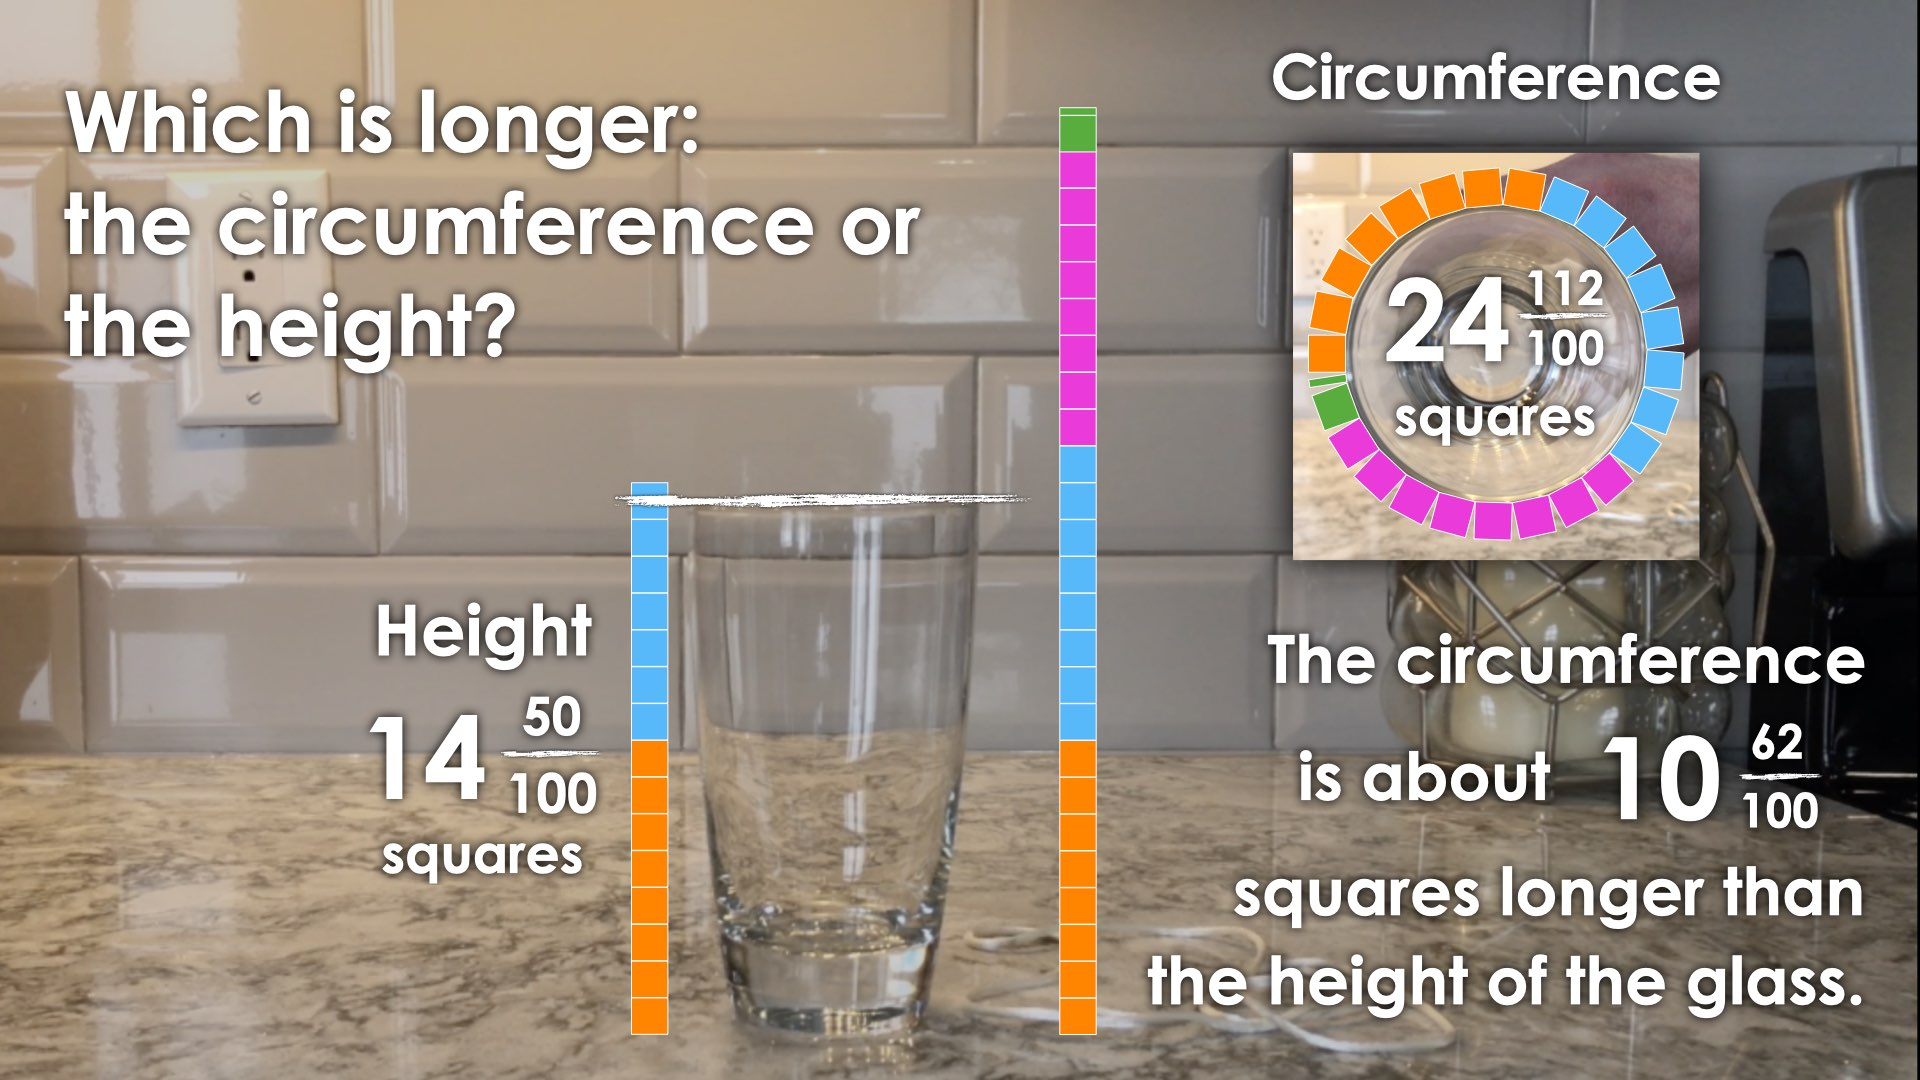 Going-In-Circles-Day-1-Circumference-vs-Height-11-Next-Moves-Consolidation-Image-2-Difference.001.jpeg